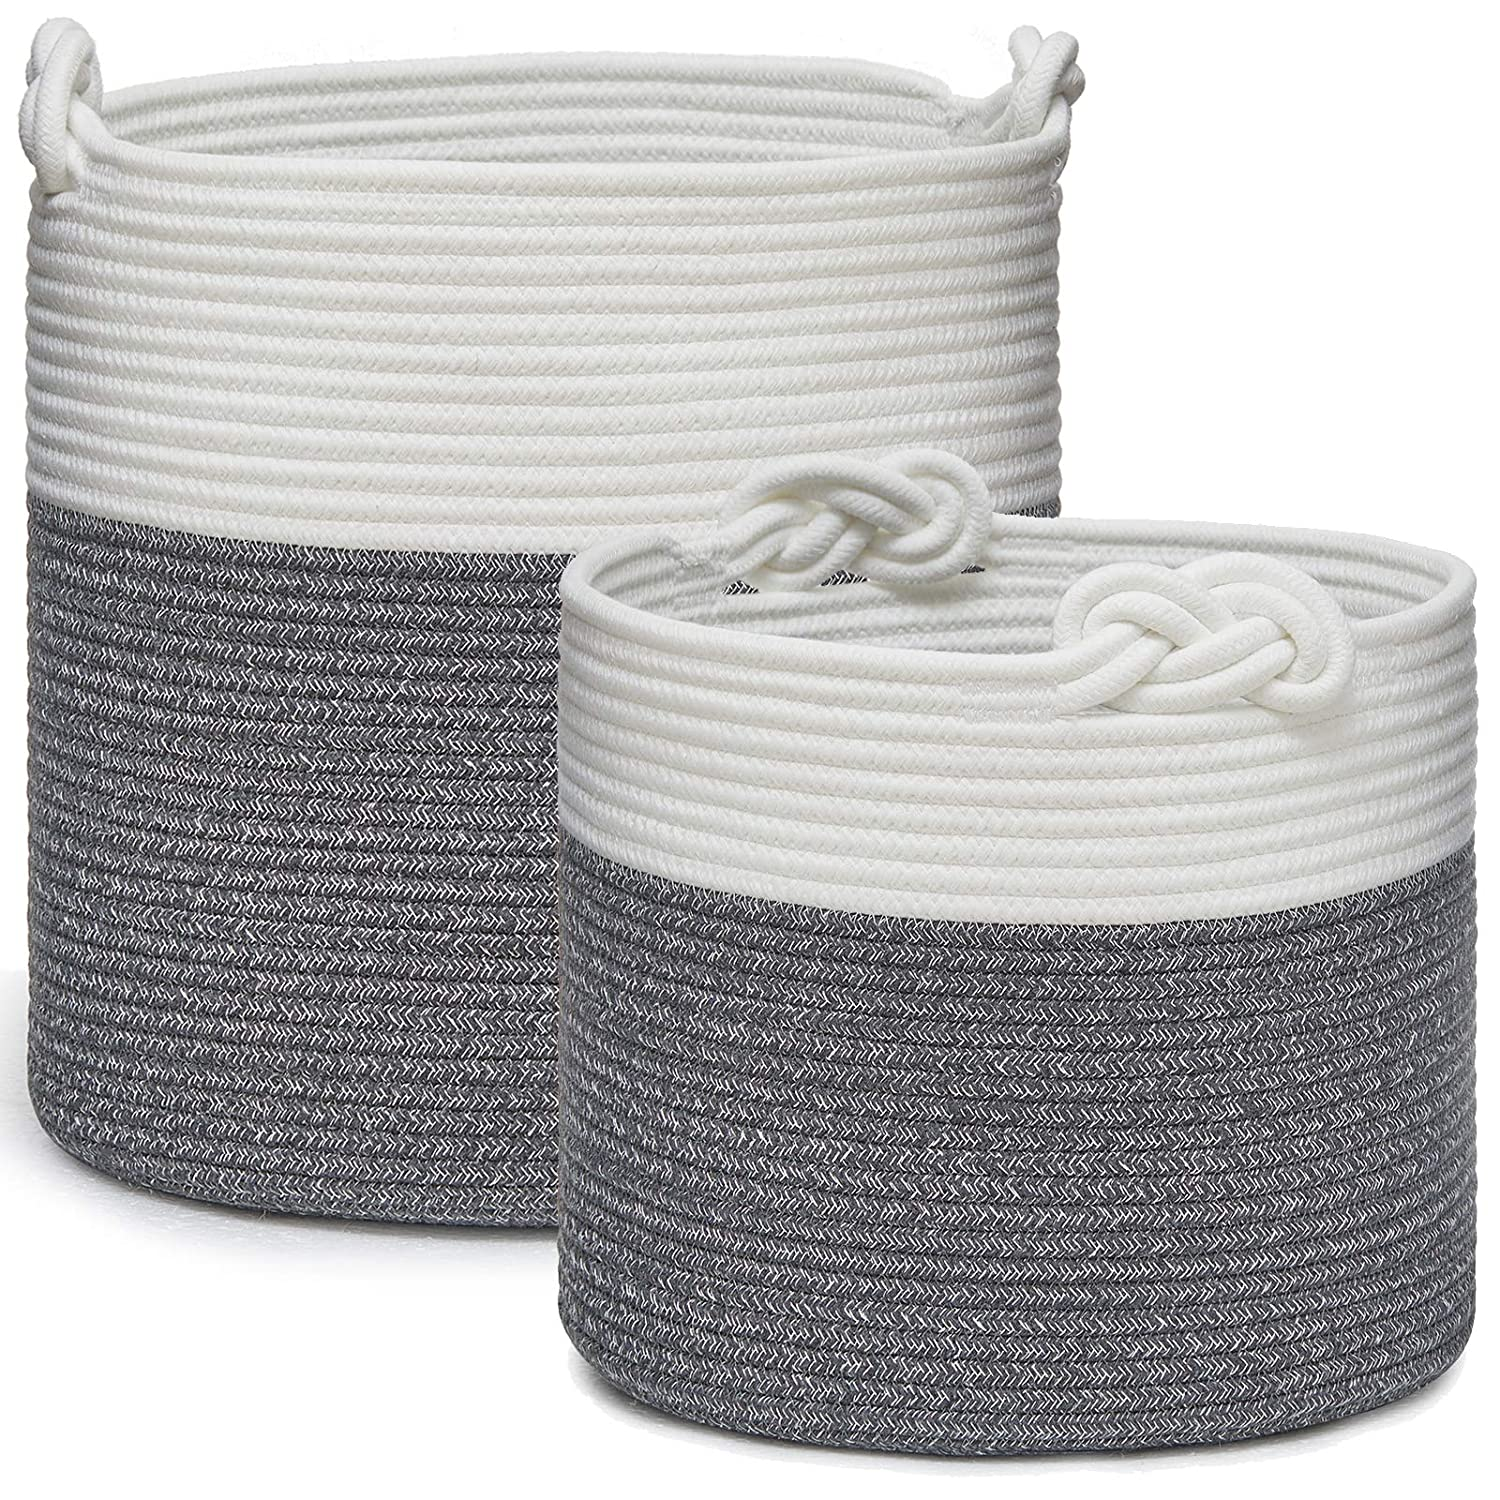 Max 82% OFF Choice Set of 2 Cotton Rope Baskets Sto Lucky Knots Handles with Woven